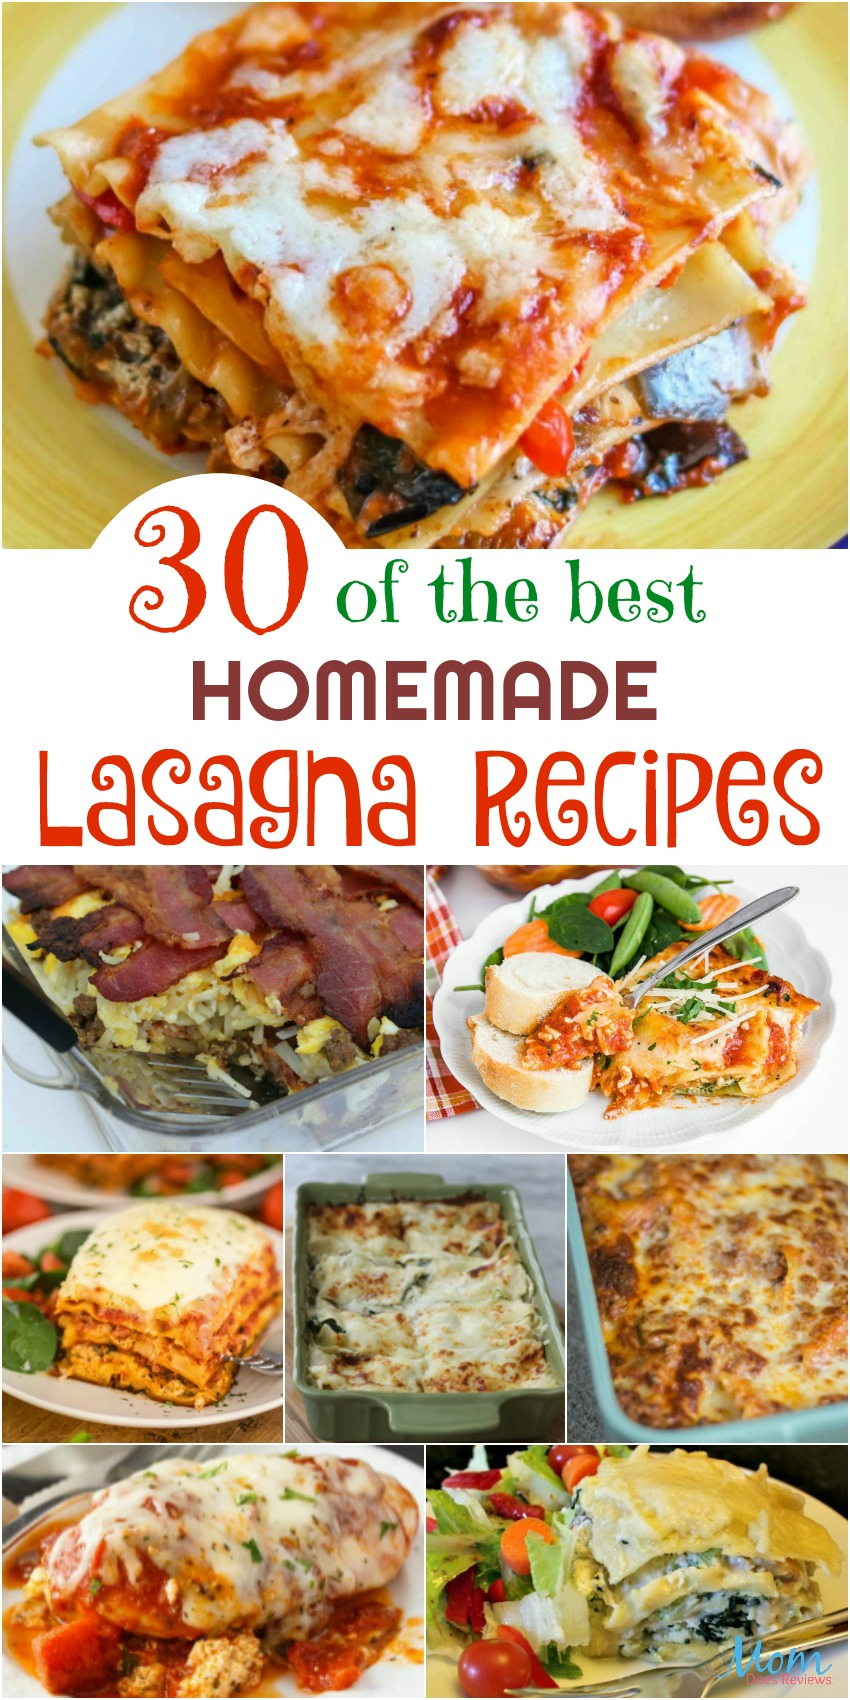 30 of the Best Homemade Lasagna Recipes Your Family Will Love #recipes #lasagna #foodie